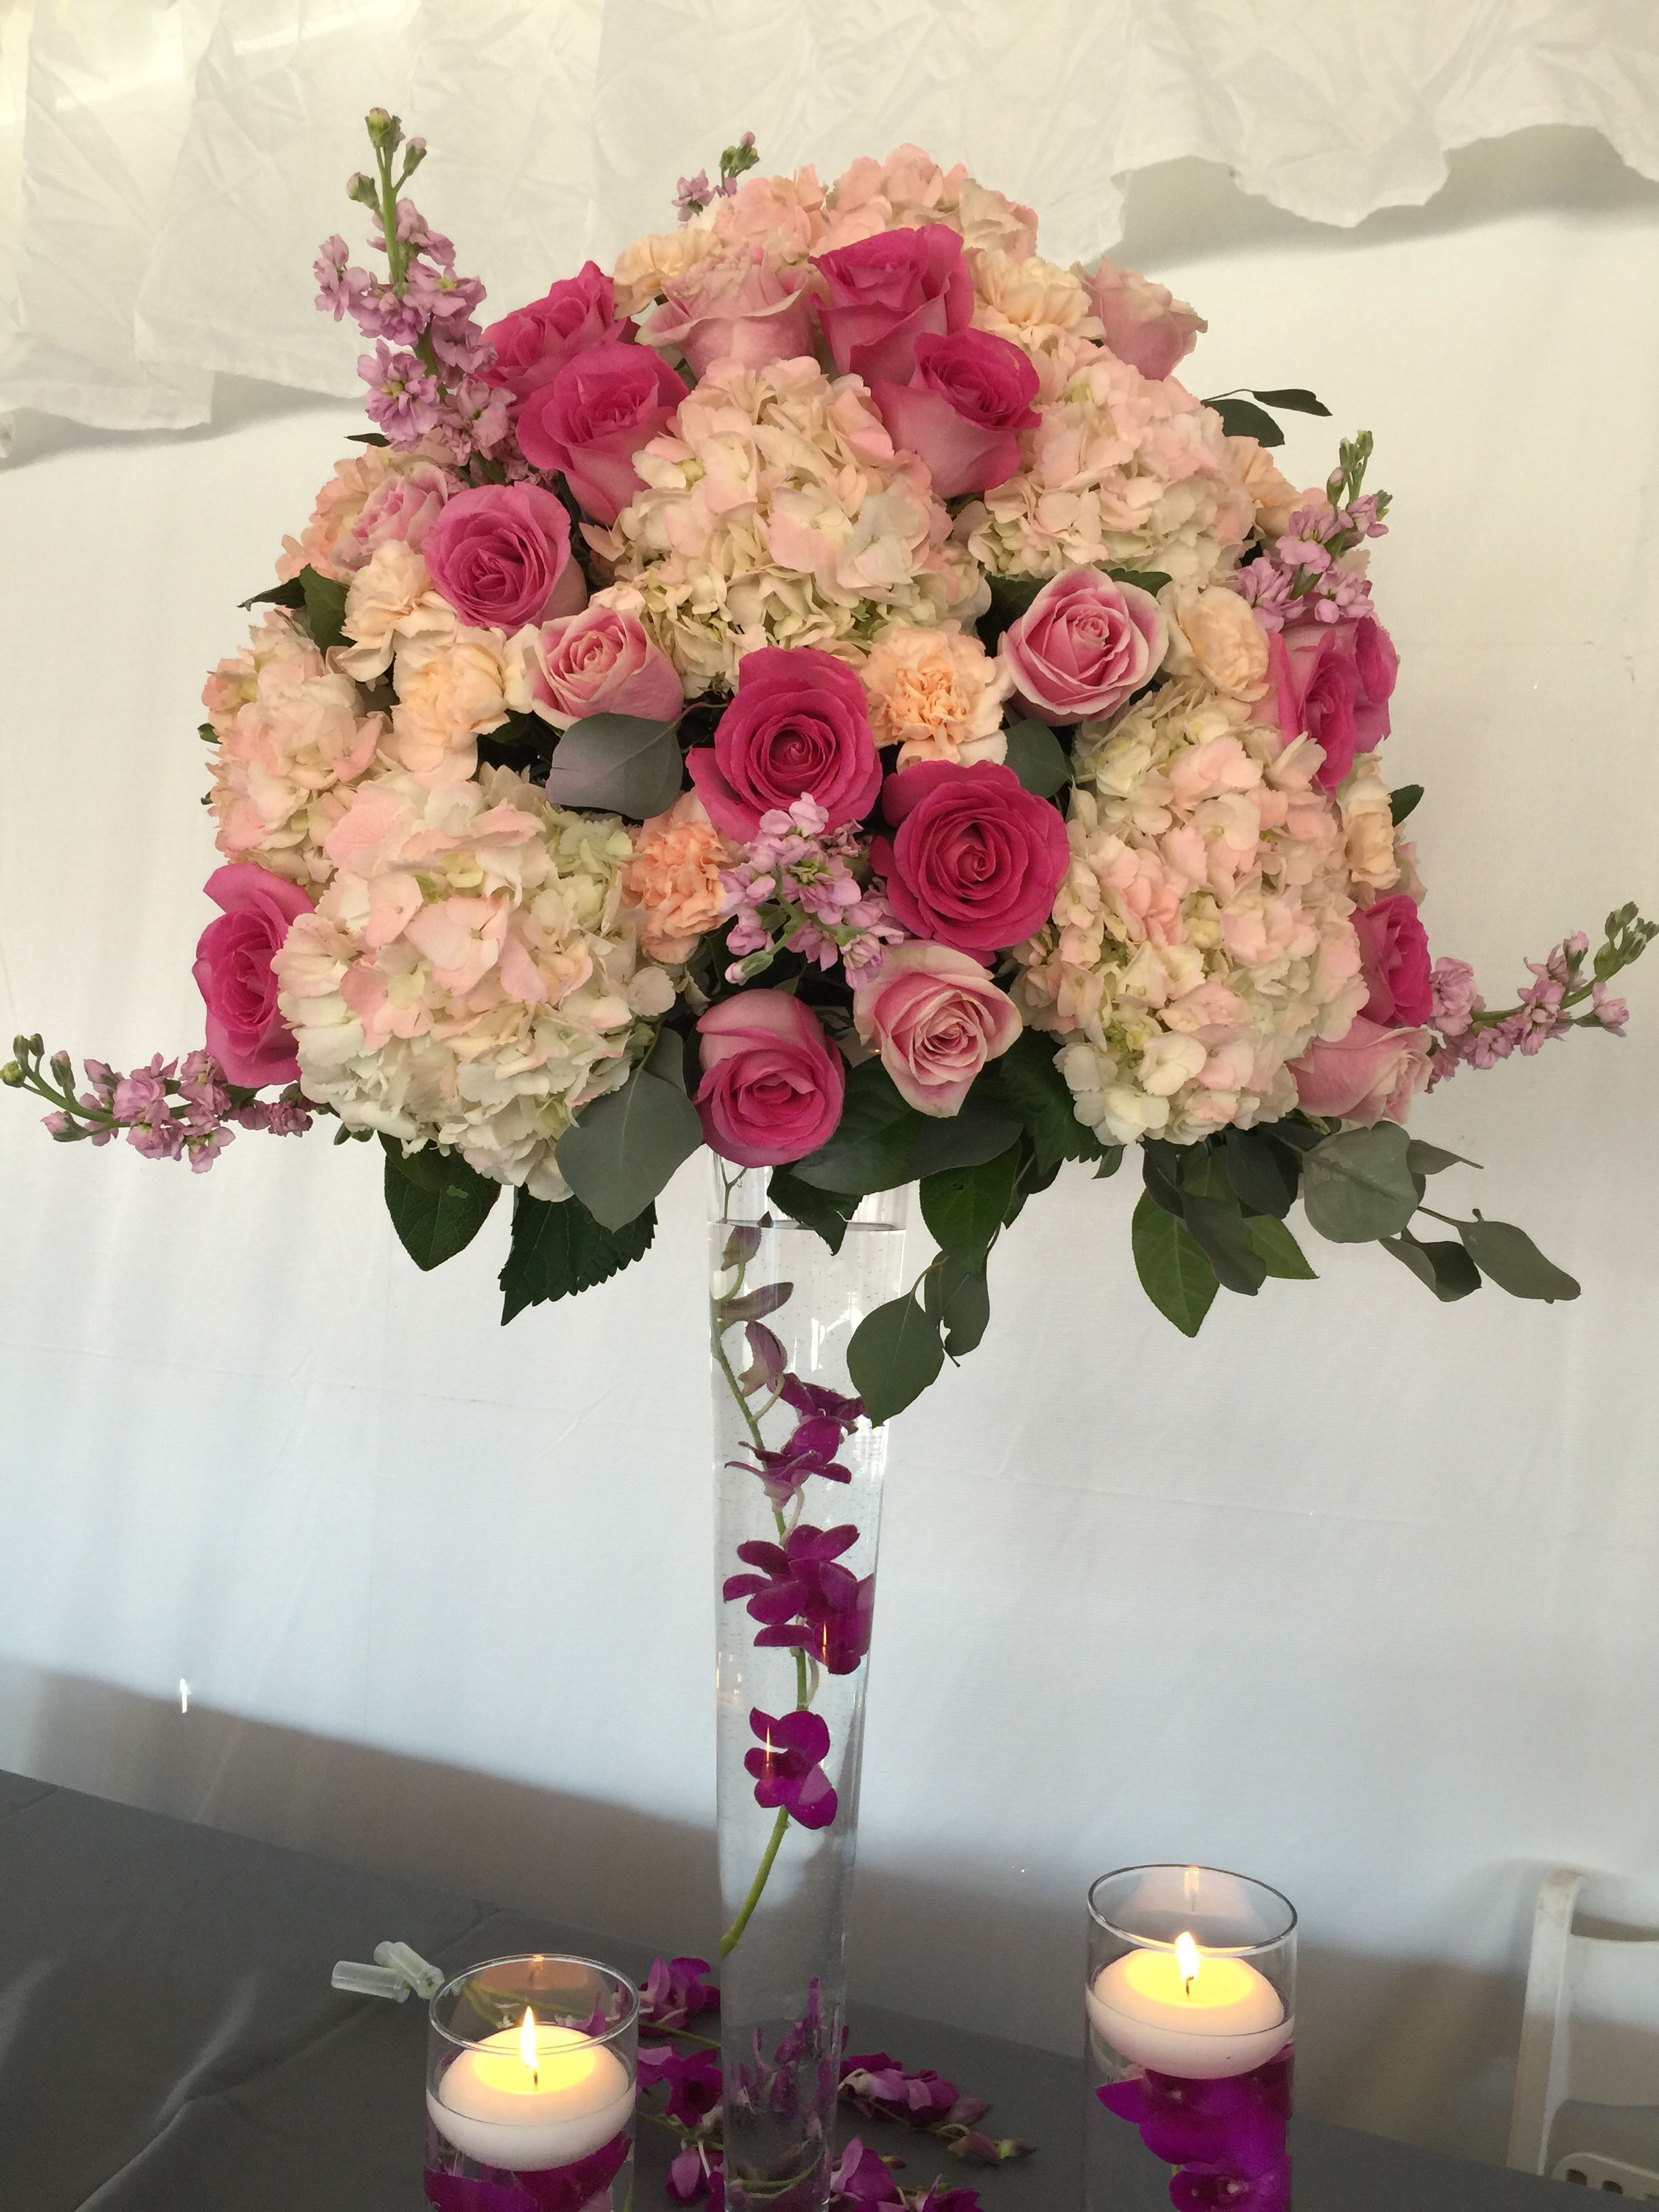 Wedding centerpiece tall pilsner vase with light pink hydrangea wedding centerpiece tall pilsner vase with light pink hydrangea light pink roses hot pink reviewsmspy